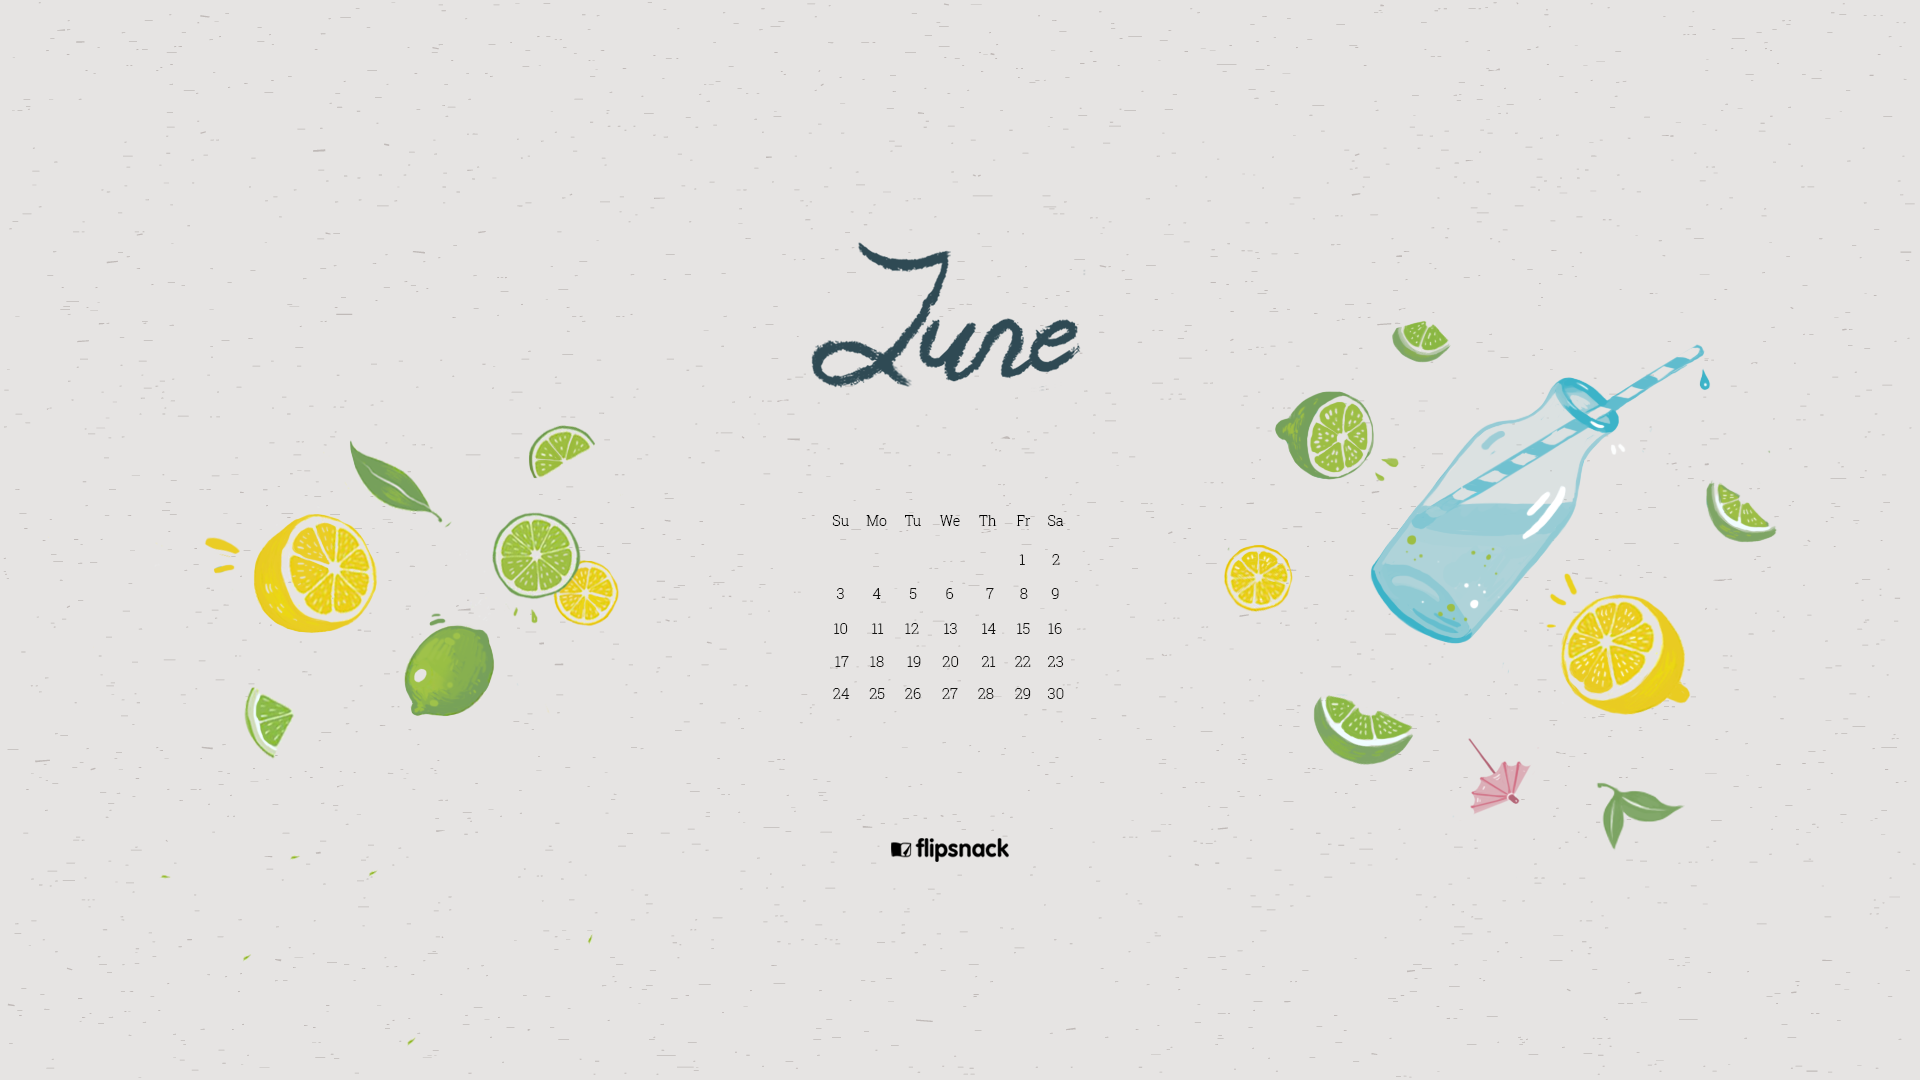 June 2019 Wallpaper Calendar